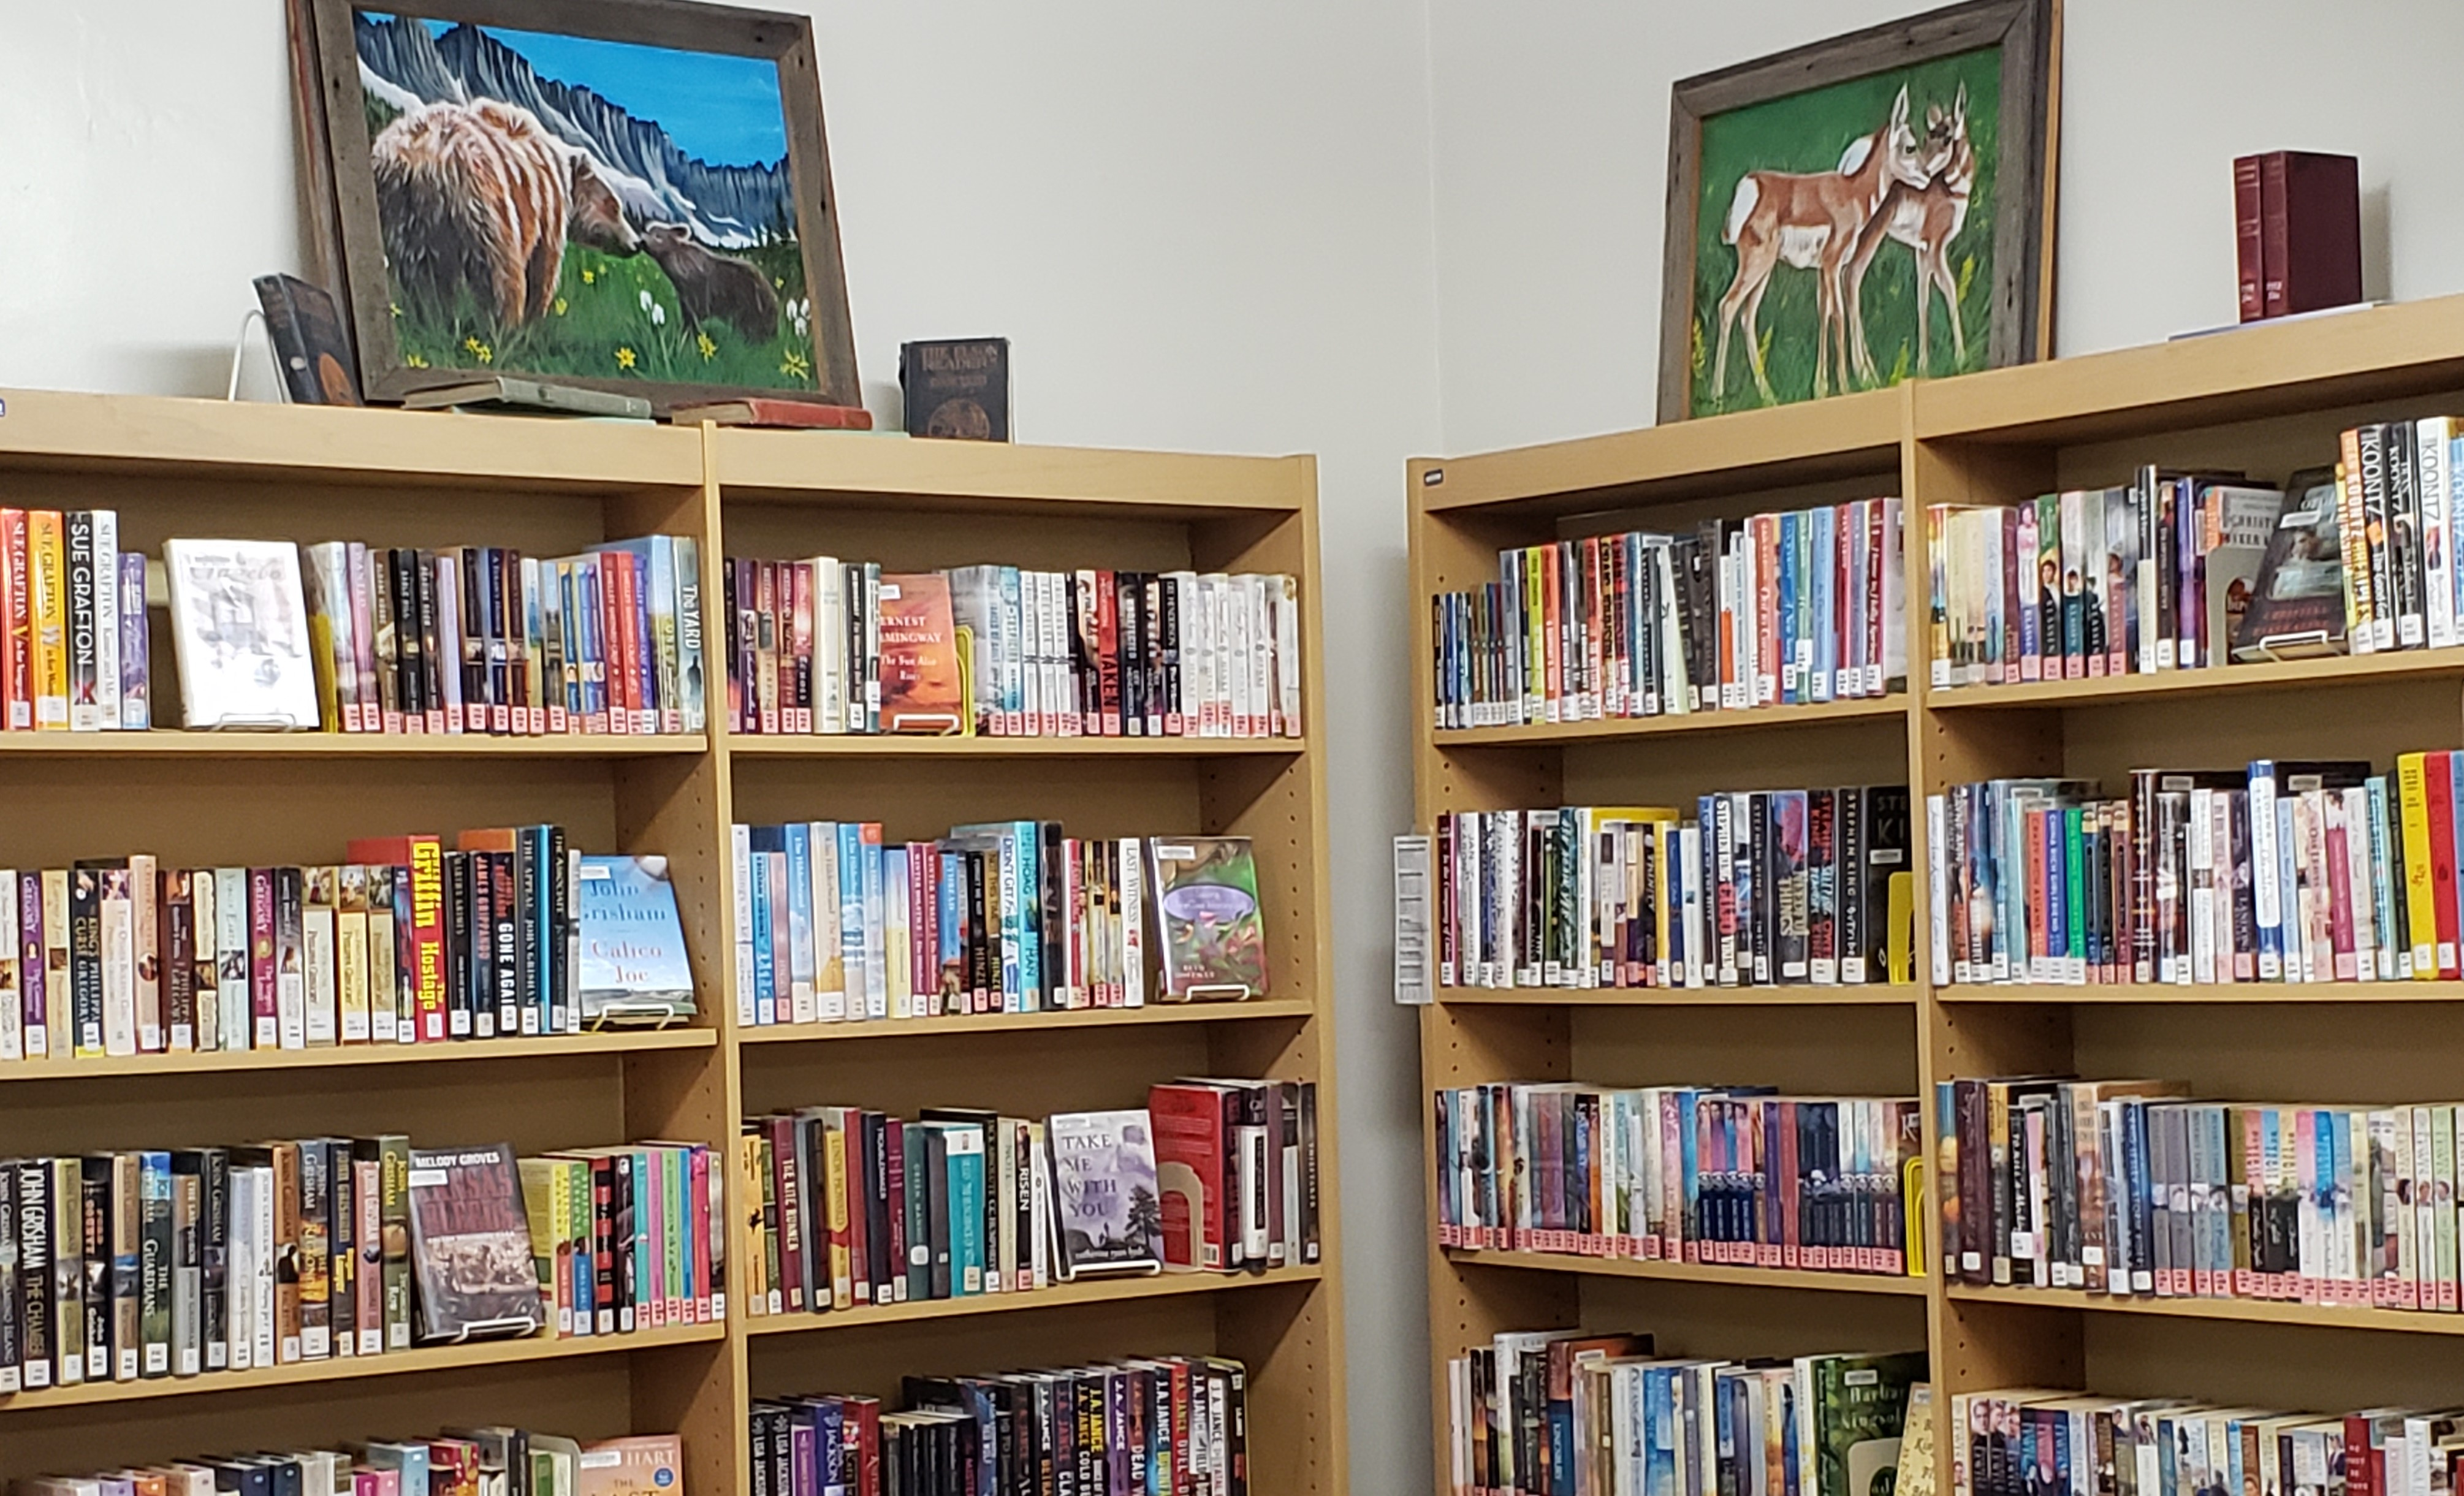 Some of our fiction titles with local art.